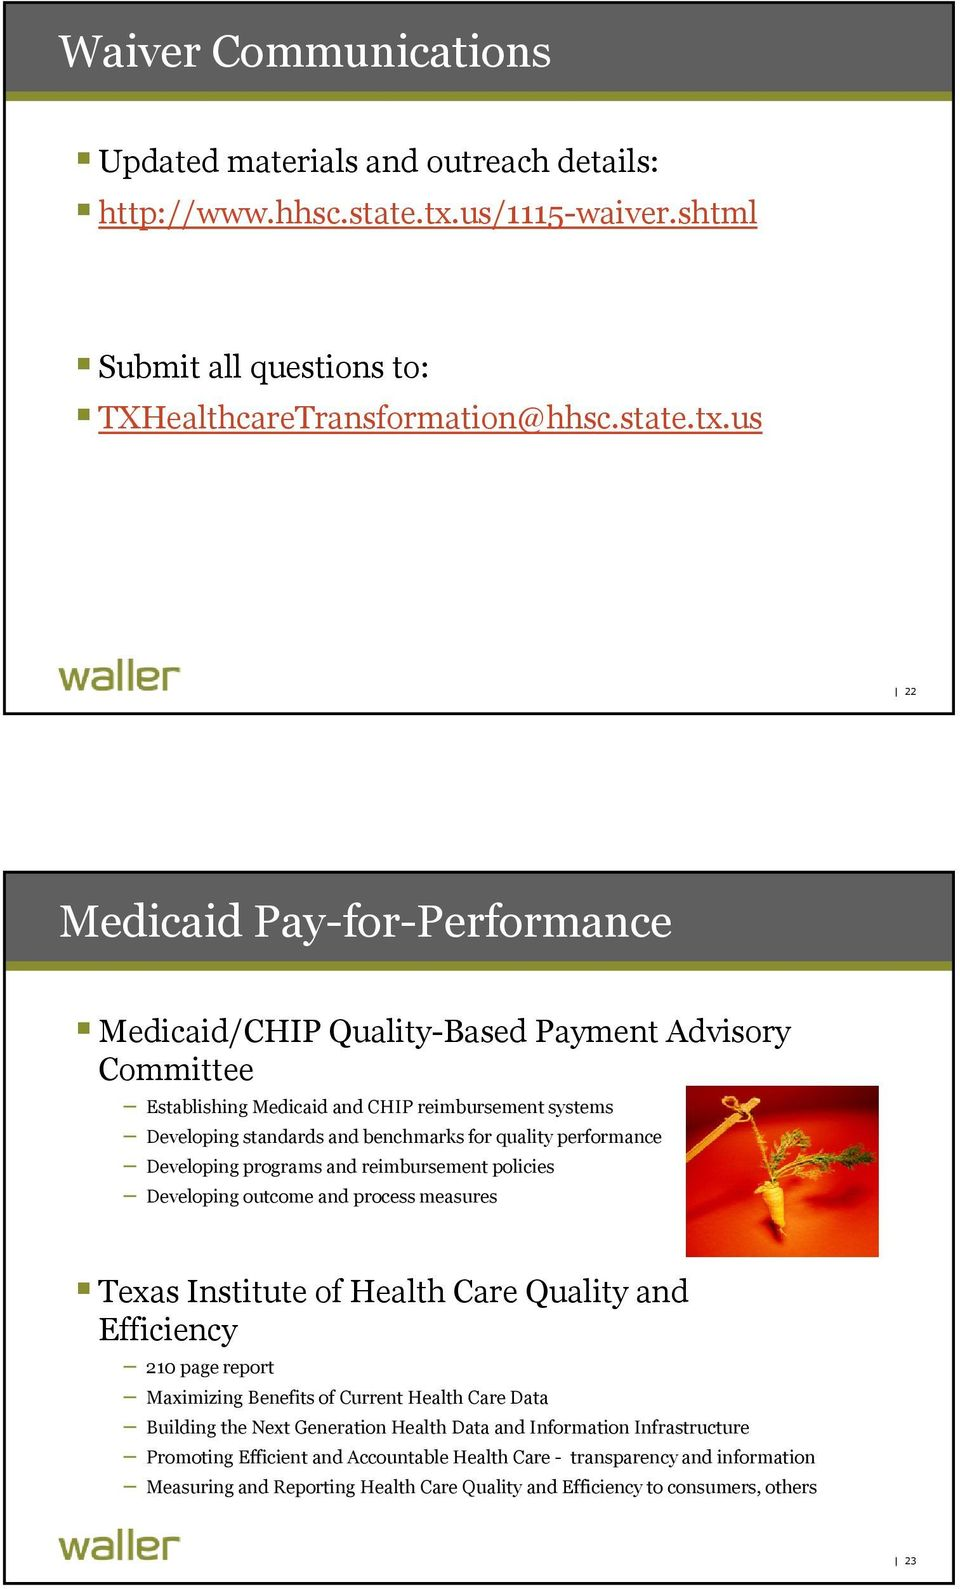 us 22 Medicaid Pay-for-Performance Medicaid/CHIP Quality-Based Payment Advisory Committee Establishing Medicaid and CHIP reimbursement systems Developing standards and benchmarks for quality